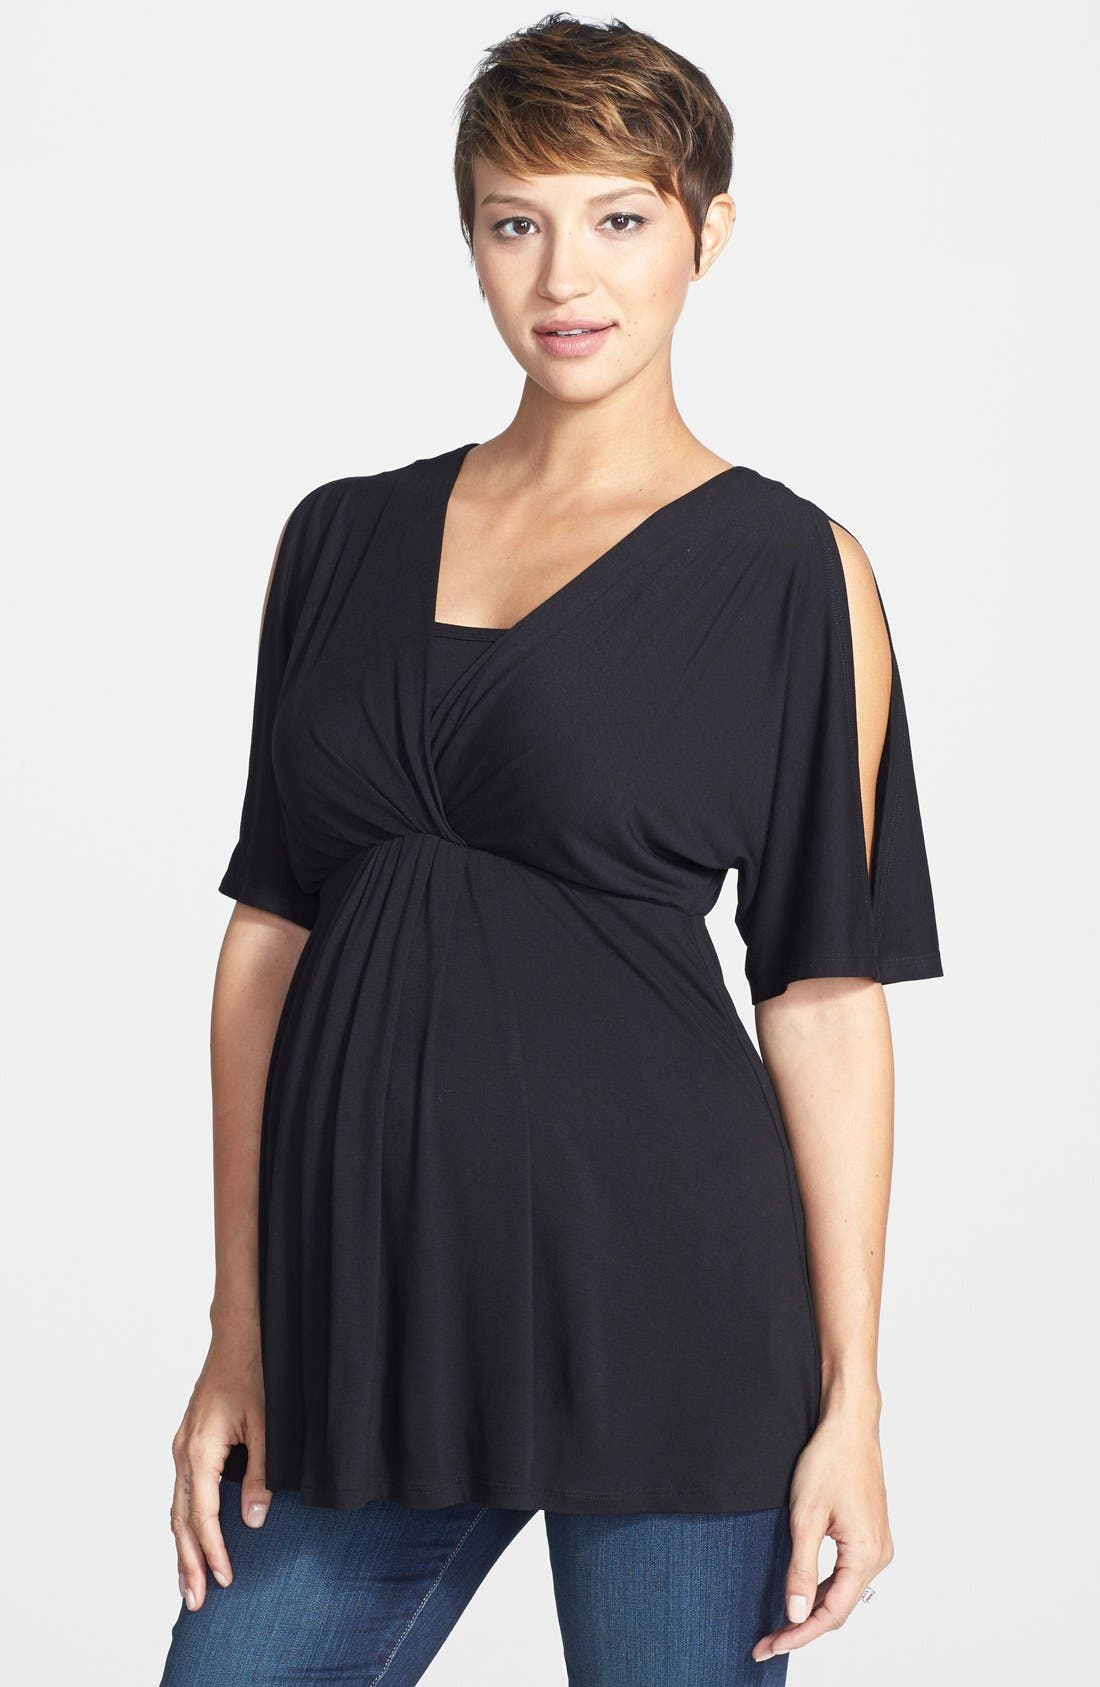 Discover our chic collection of nursing clothes at A Pea in the Pod. Find a variety of tops and dresses to match your unique style. A Pea in the Pod Maternity.